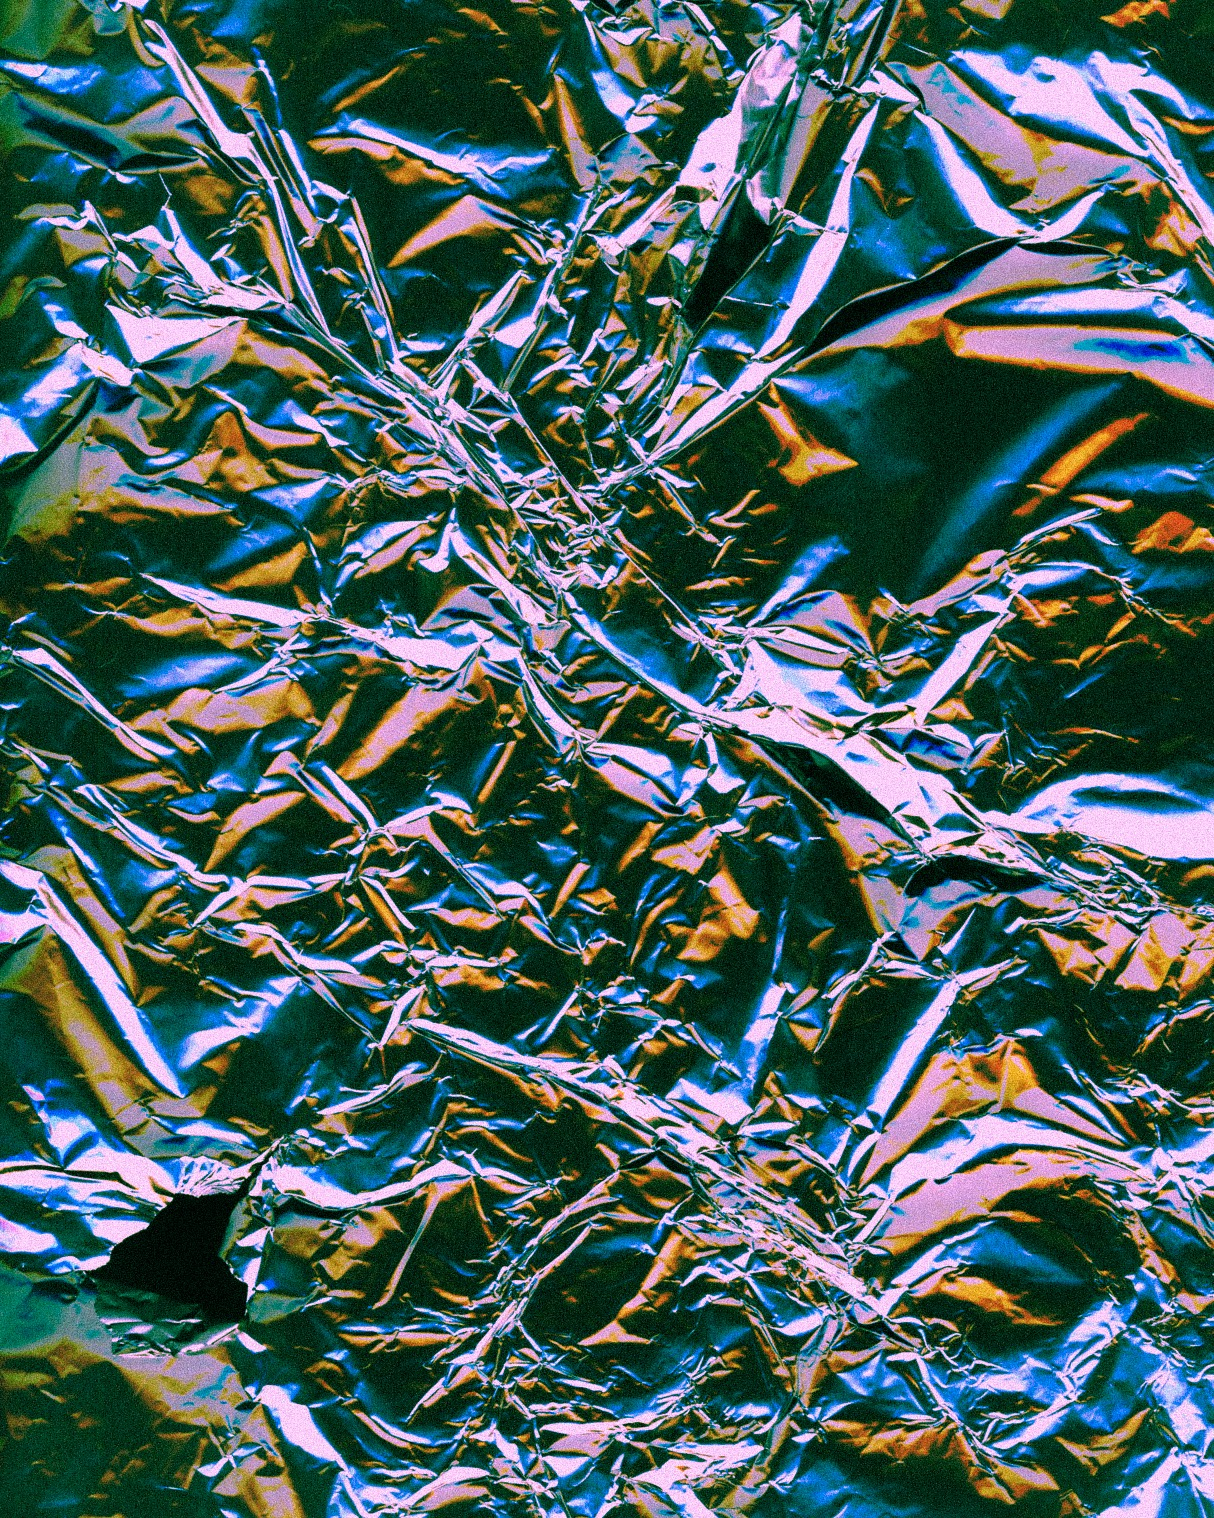 Aluminium foil scanned with digital flatbed scanner.  (2018)